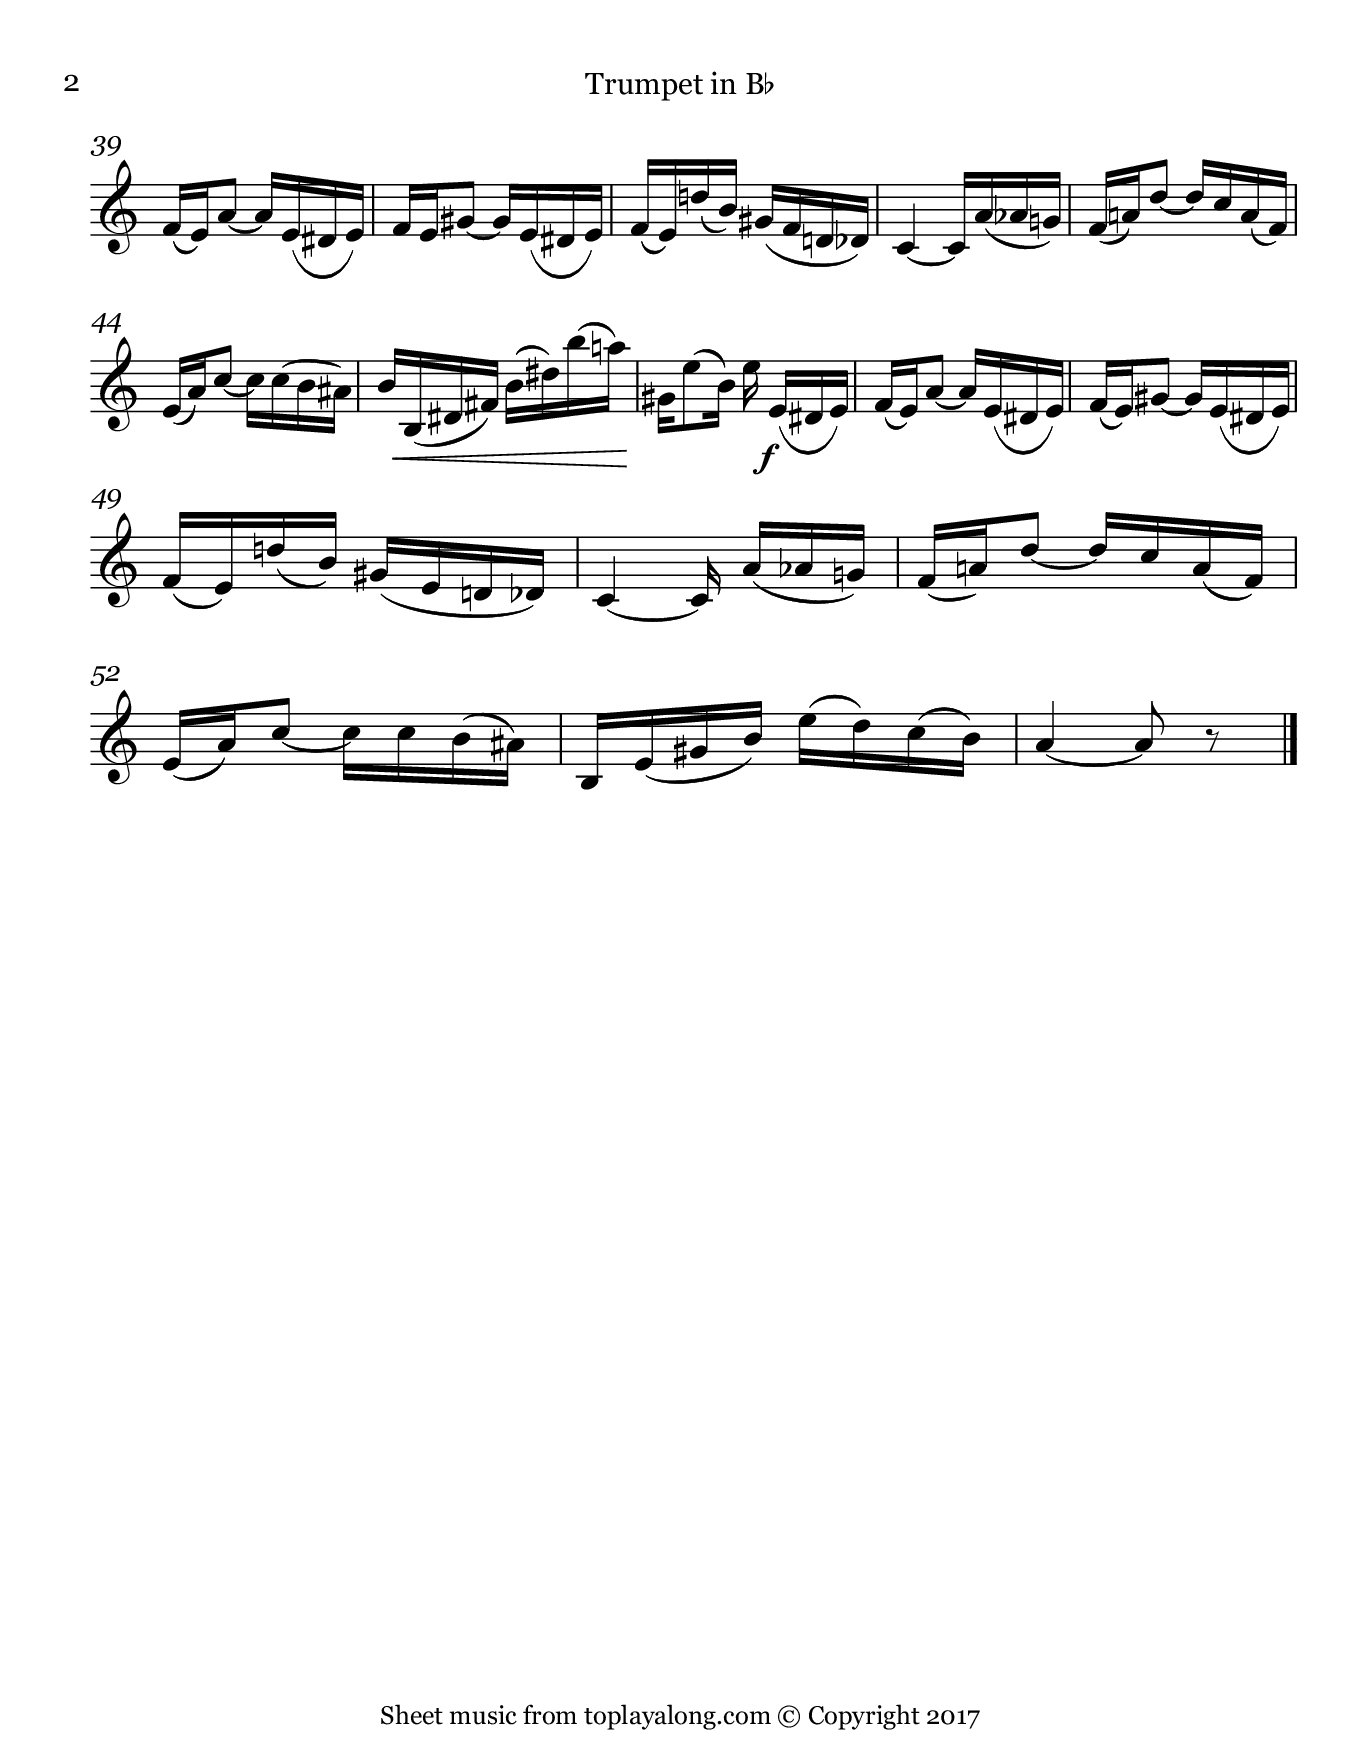 Tico-Tico no Fubá by Abreu. Sheet music for Trumpet, page 2.